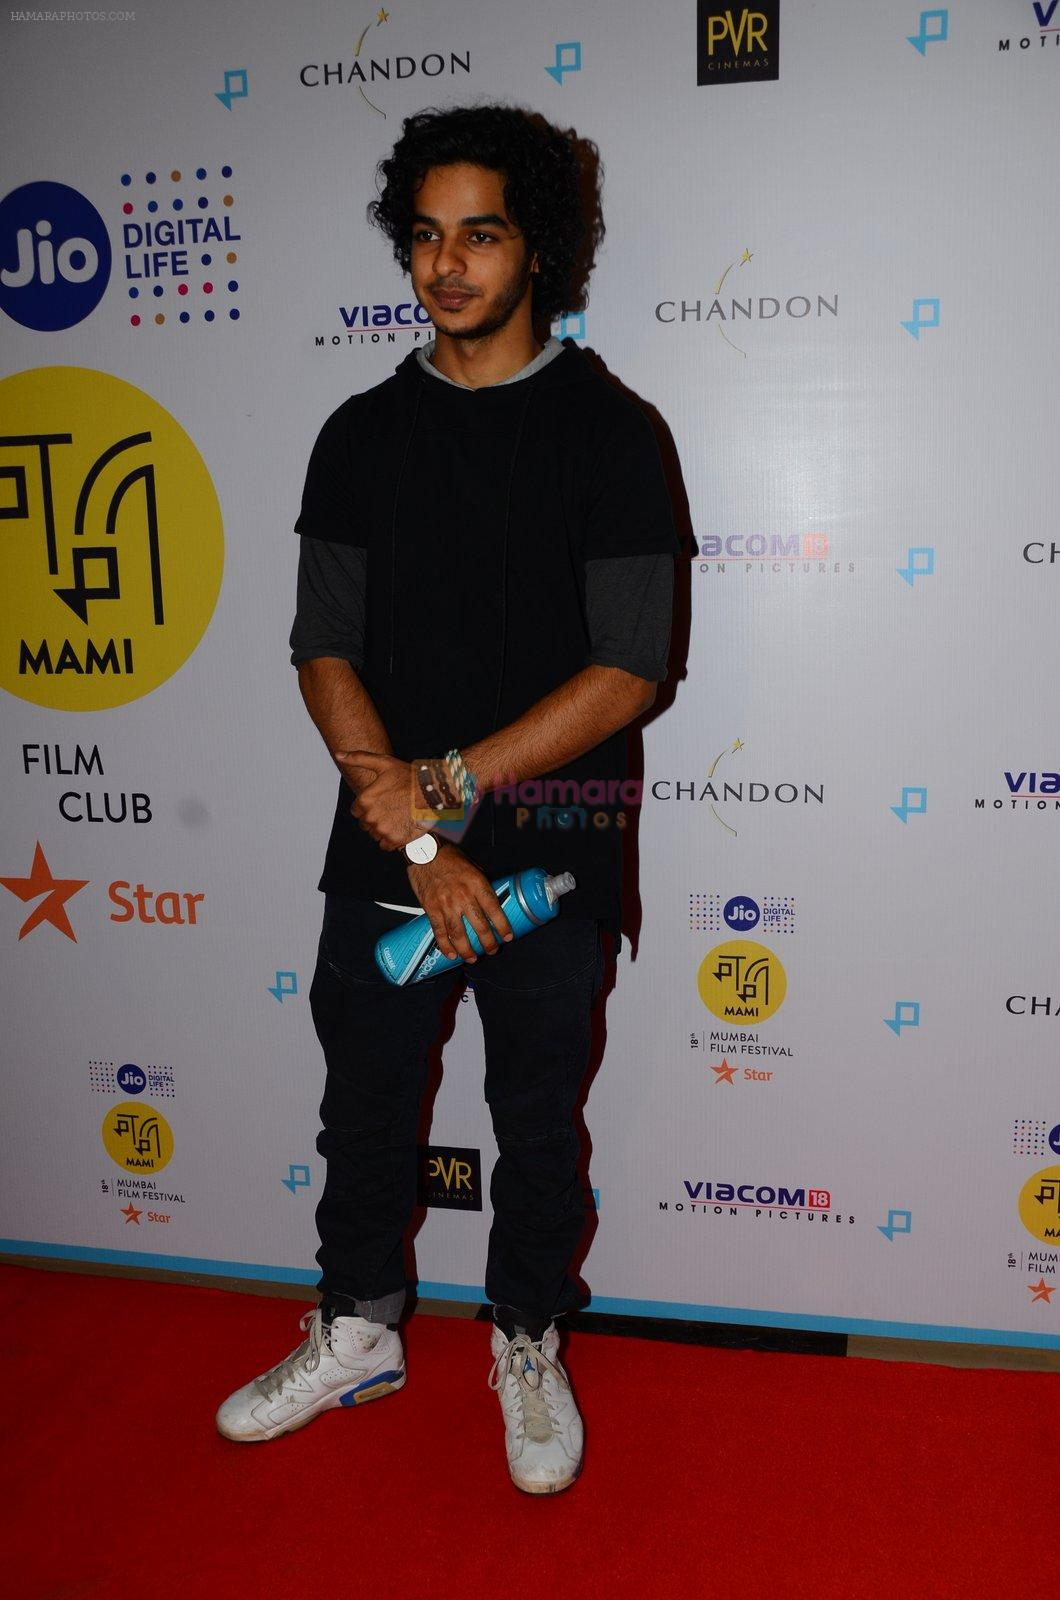 Ishaan Khattar at La La land screening in Mumbai on 23rd Nov 2016